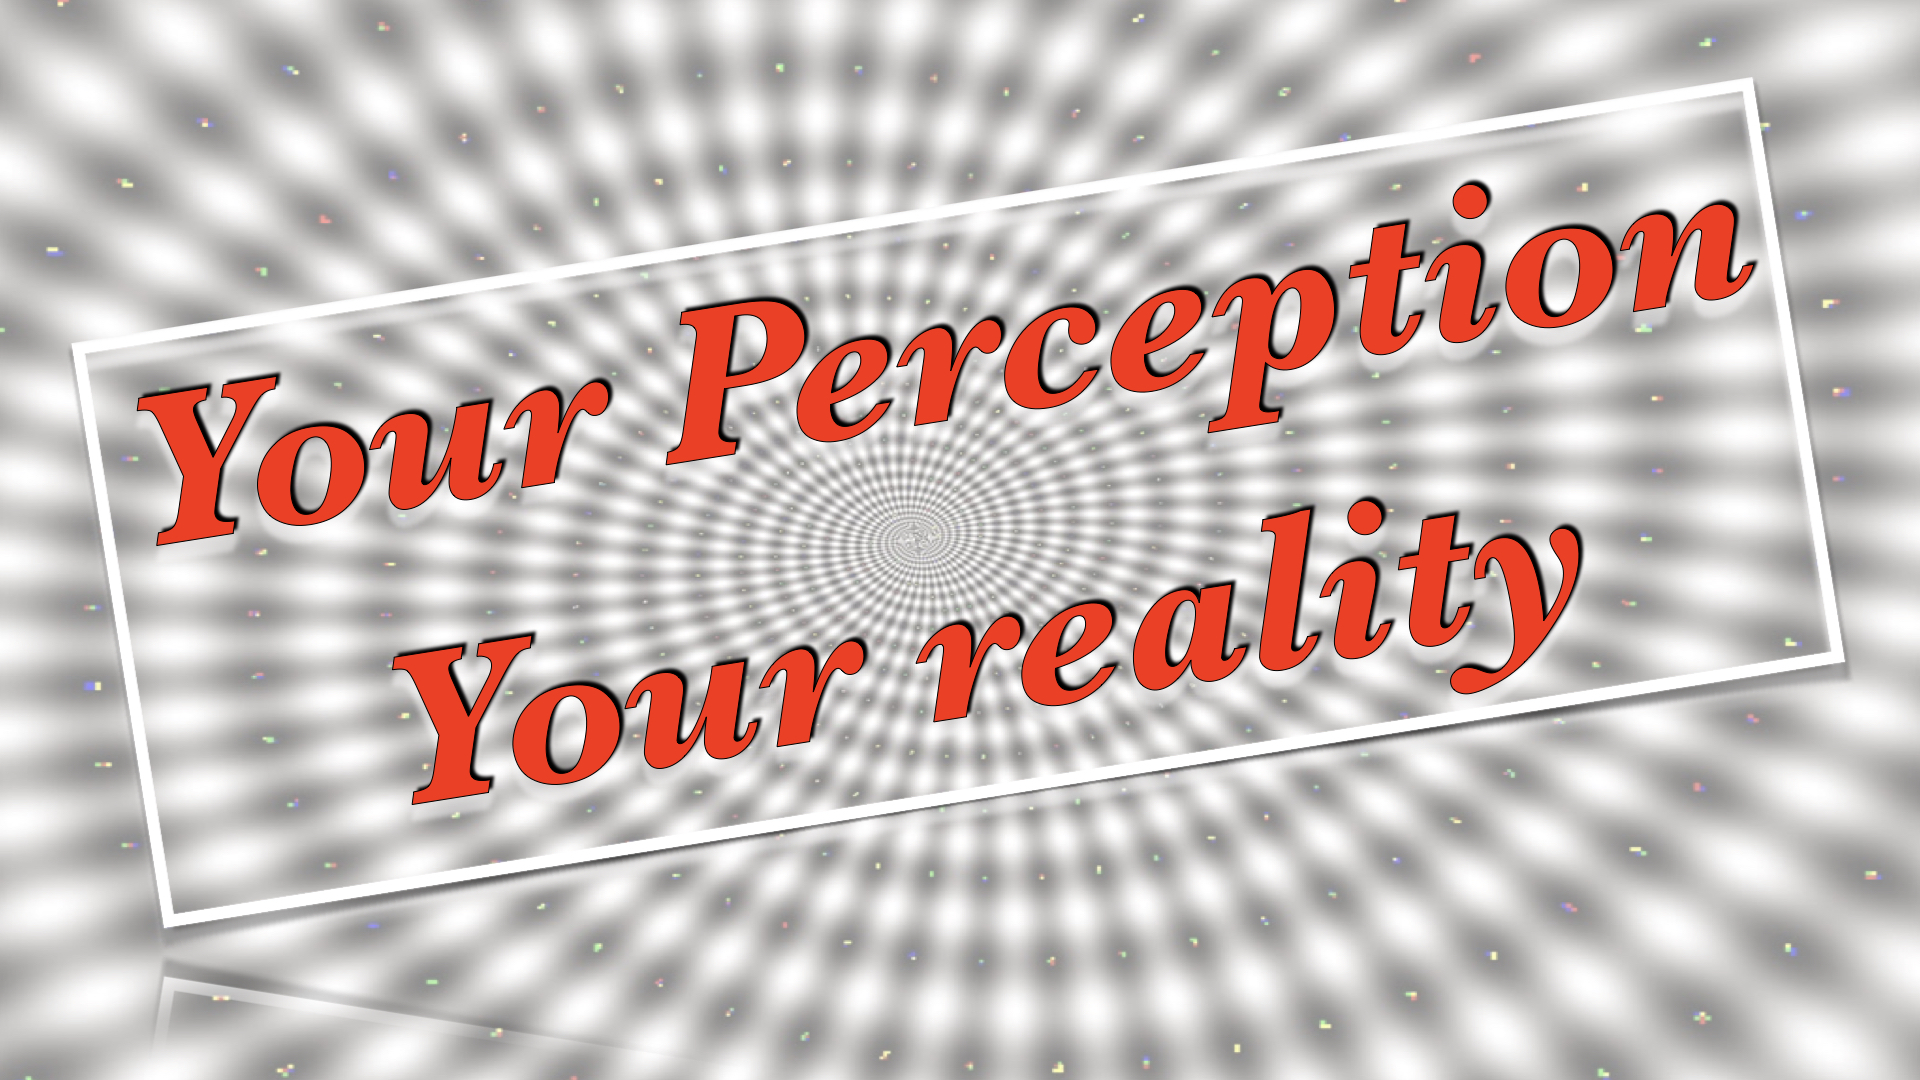 Your Perception Your reality  1192020